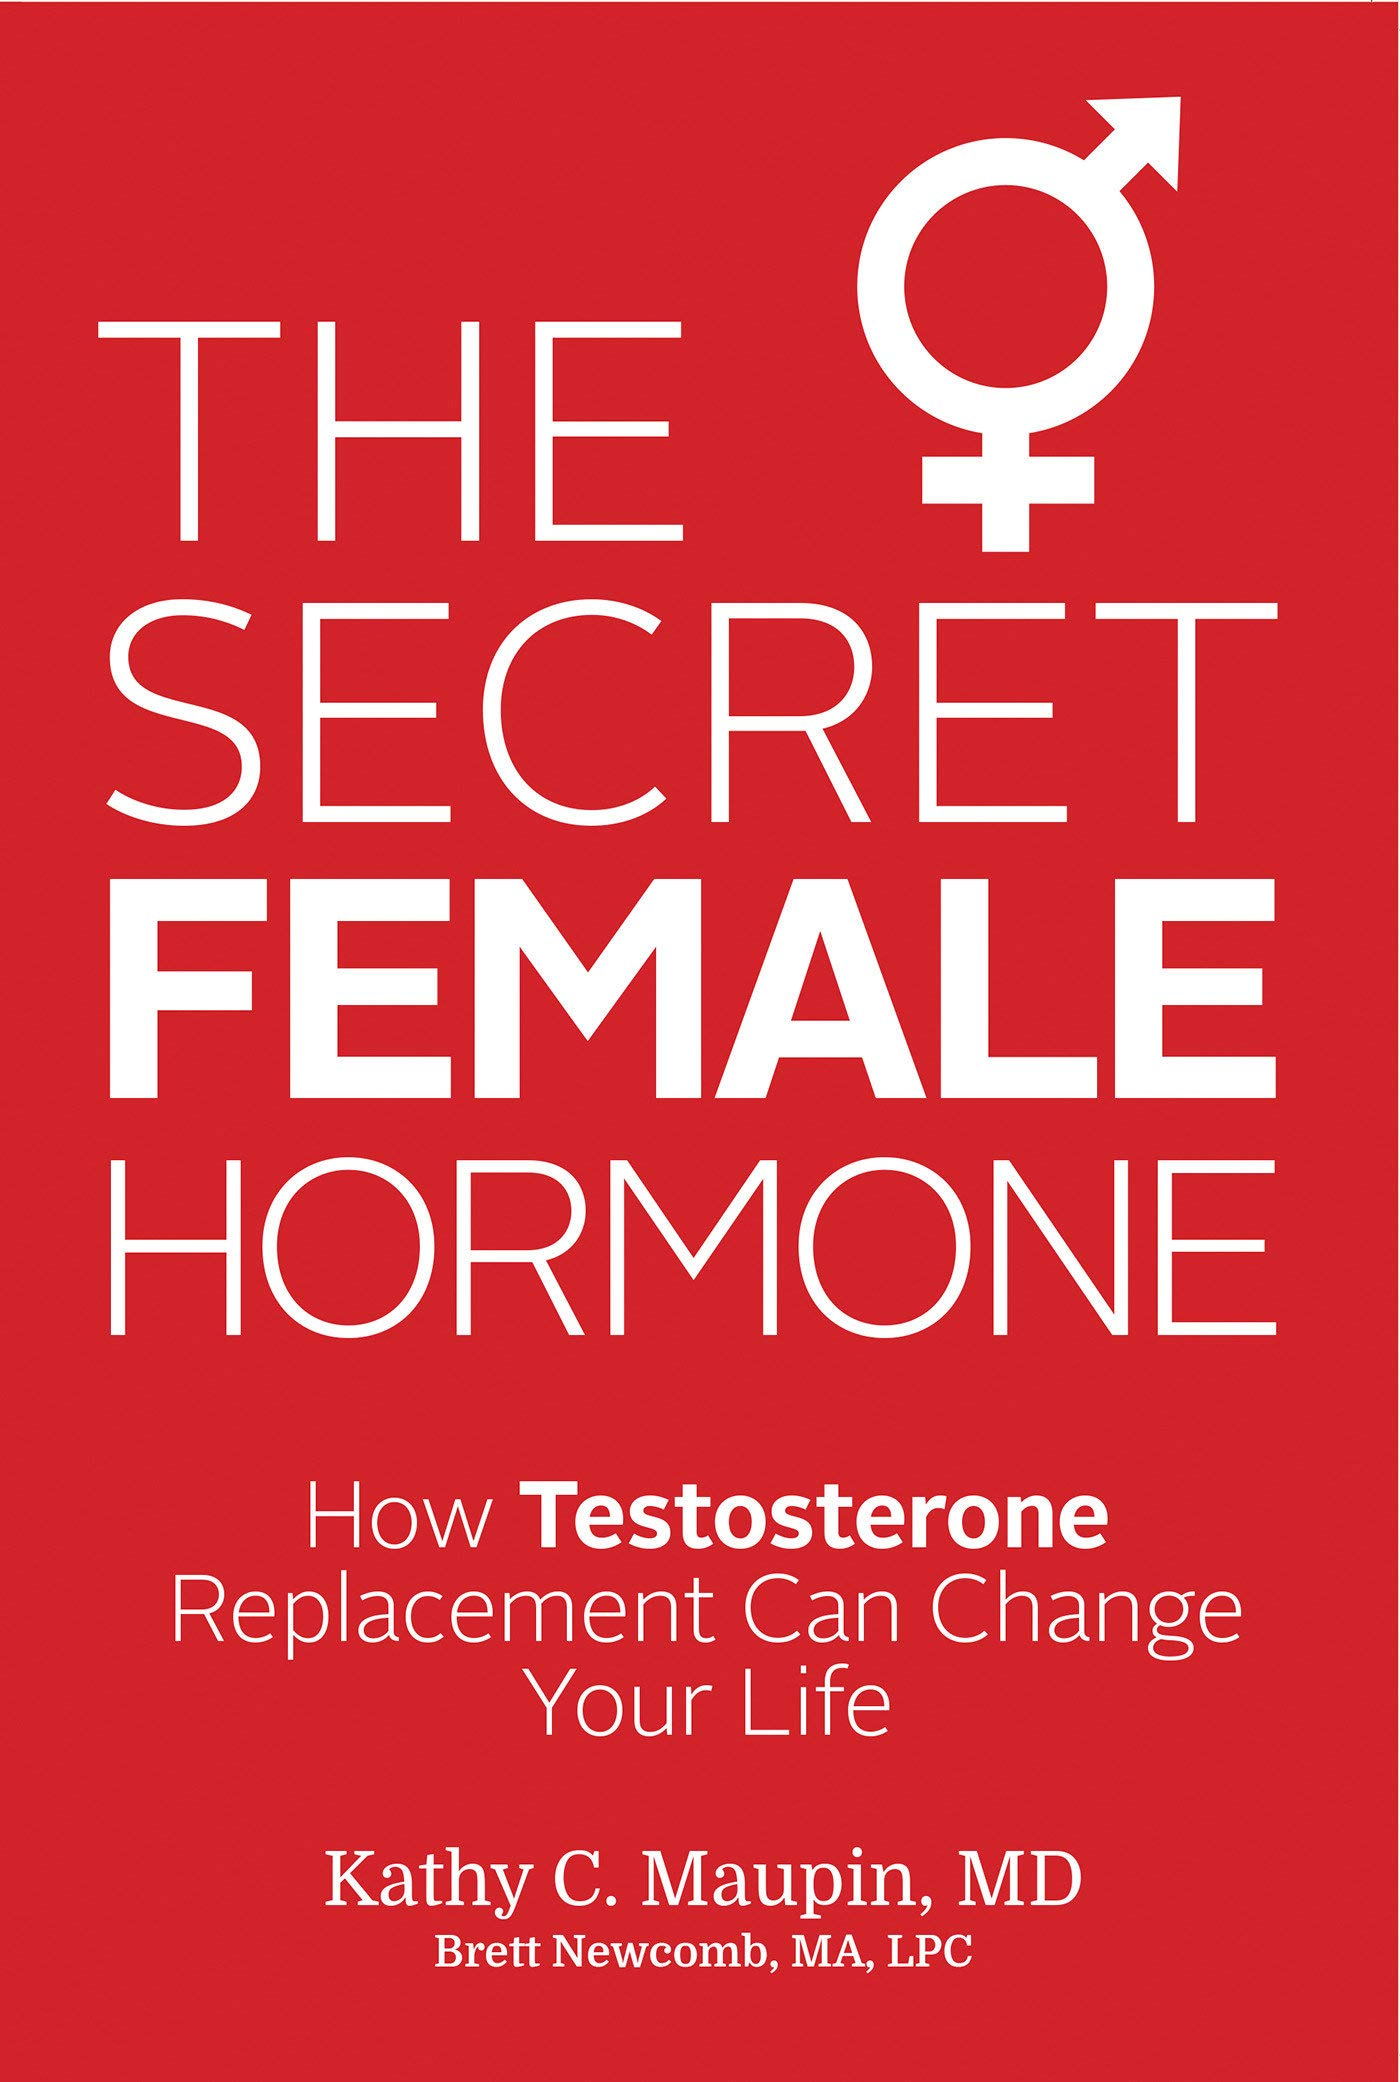 The Secret Female Hormone: How Testosterone Replacement Can Change Your  Life: Kathy C. Maupin M.D., Brett Newcomb MA LPC: 9781401943004:  Amazon.com: Books